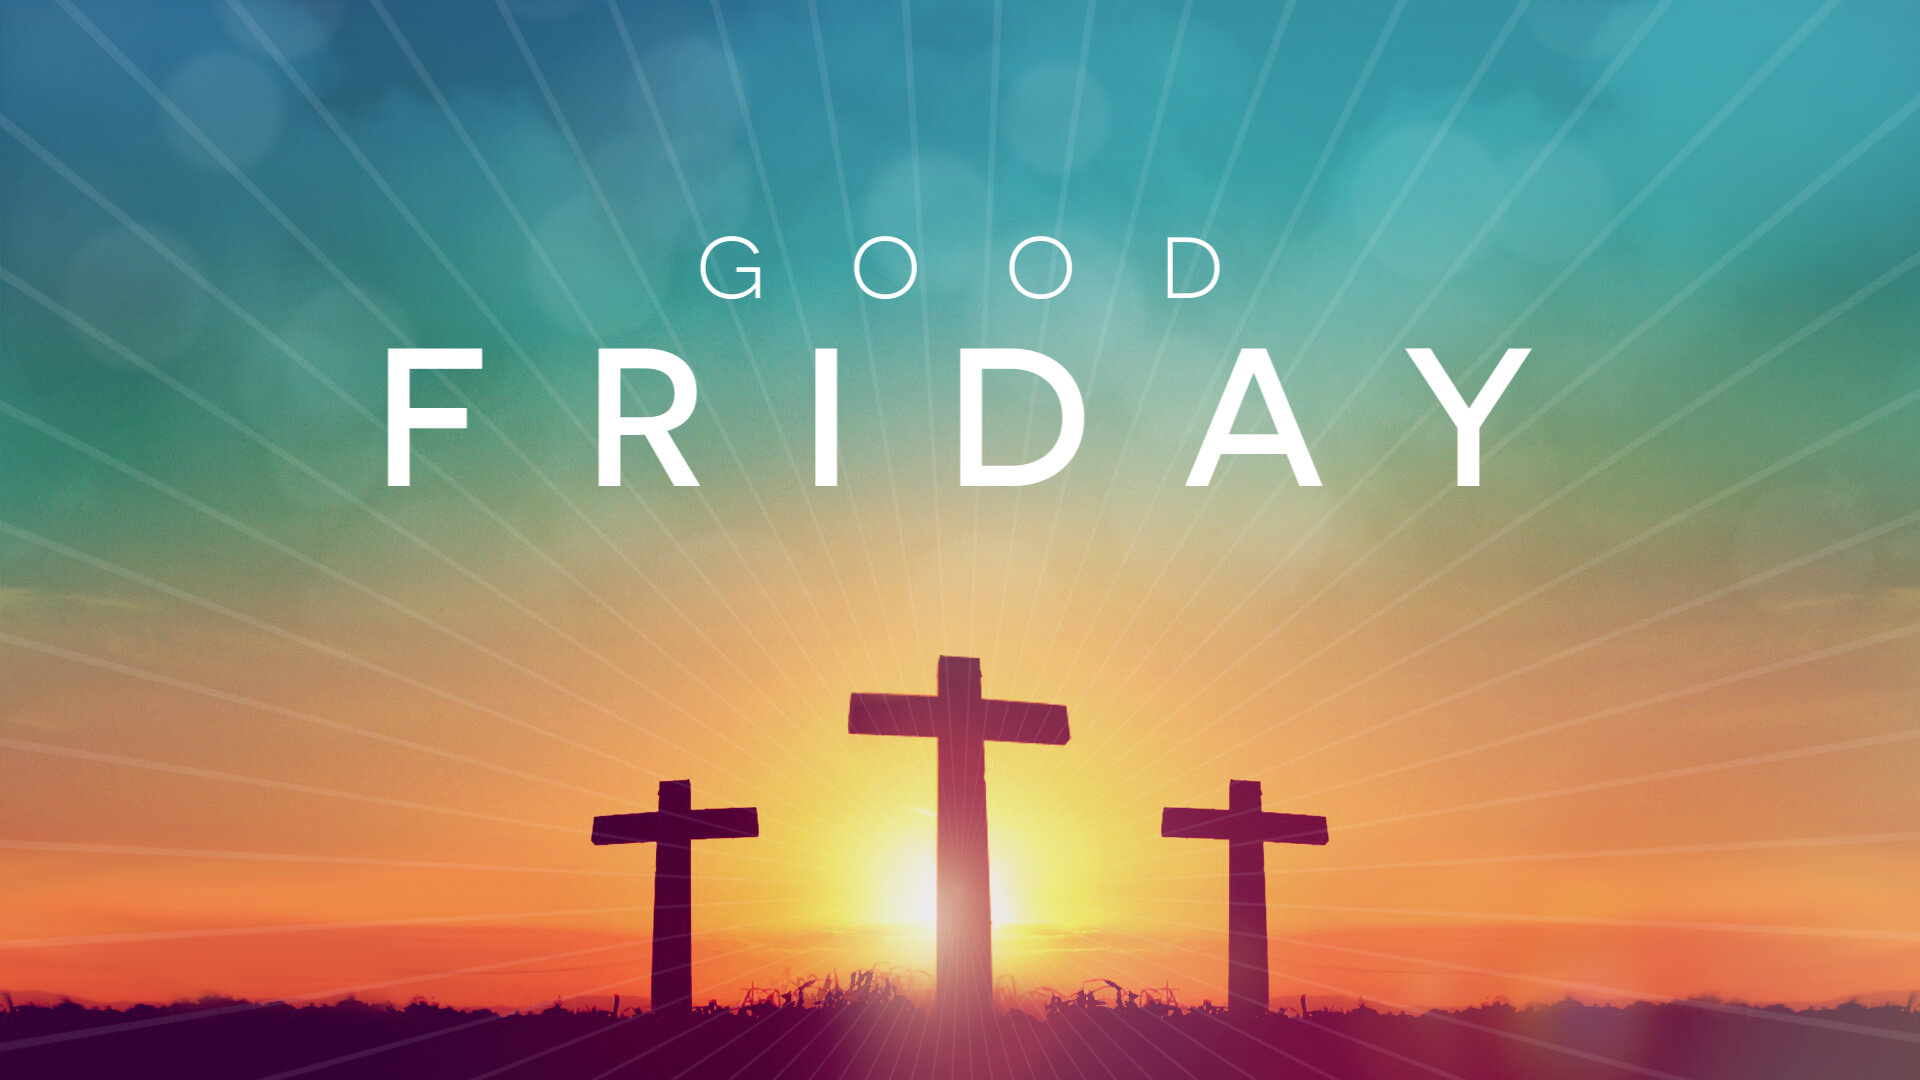 Good Friday Desktop Wallpaper Background